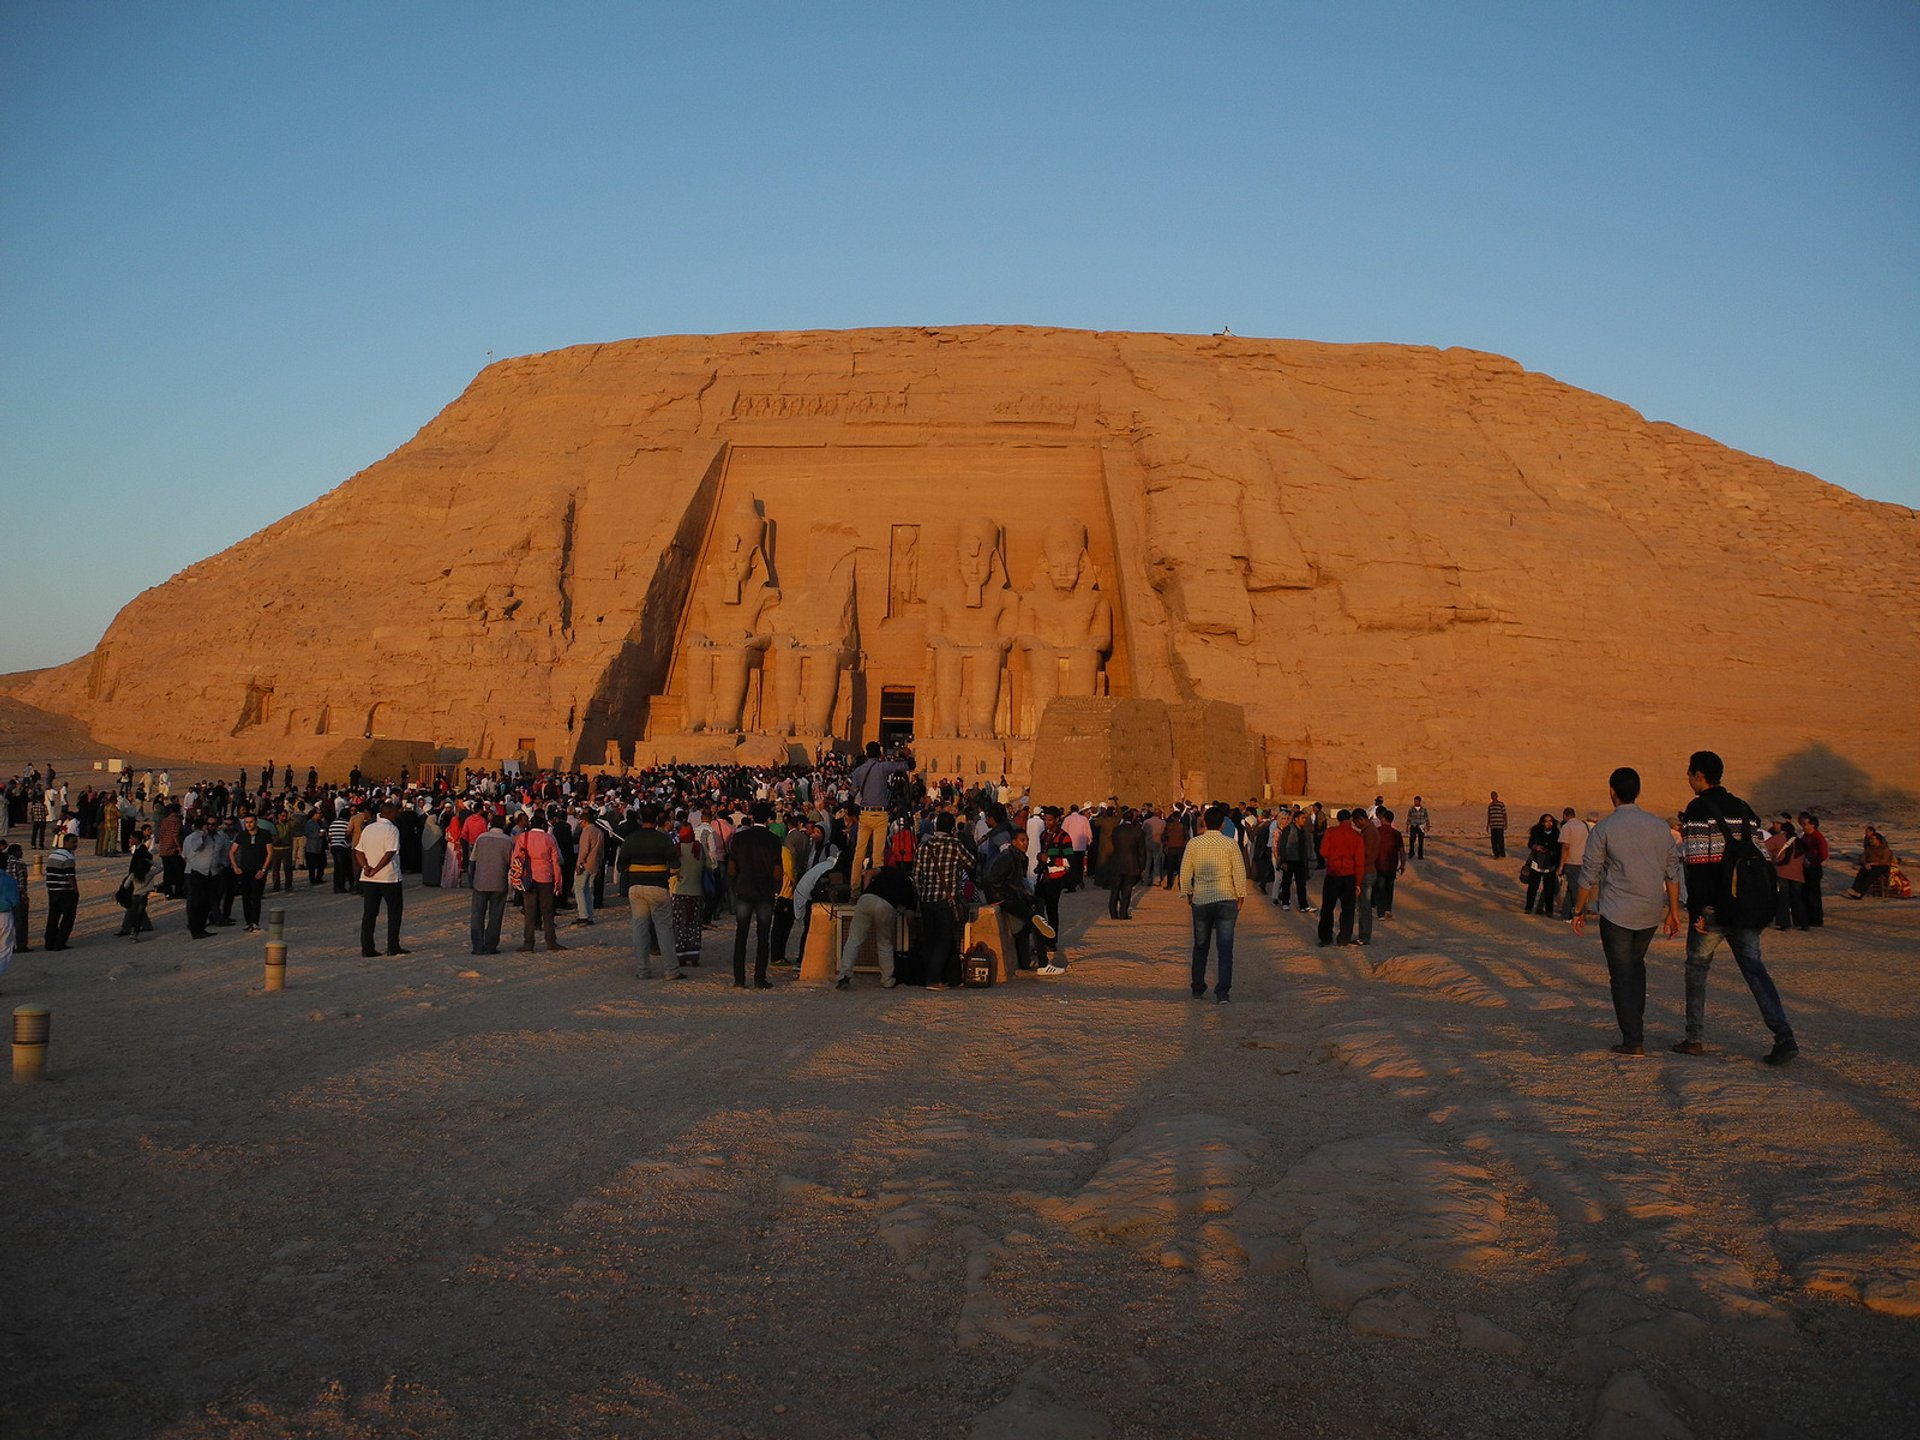 Abu Simbel Sun Festival in Egypt 2020 - Best Time